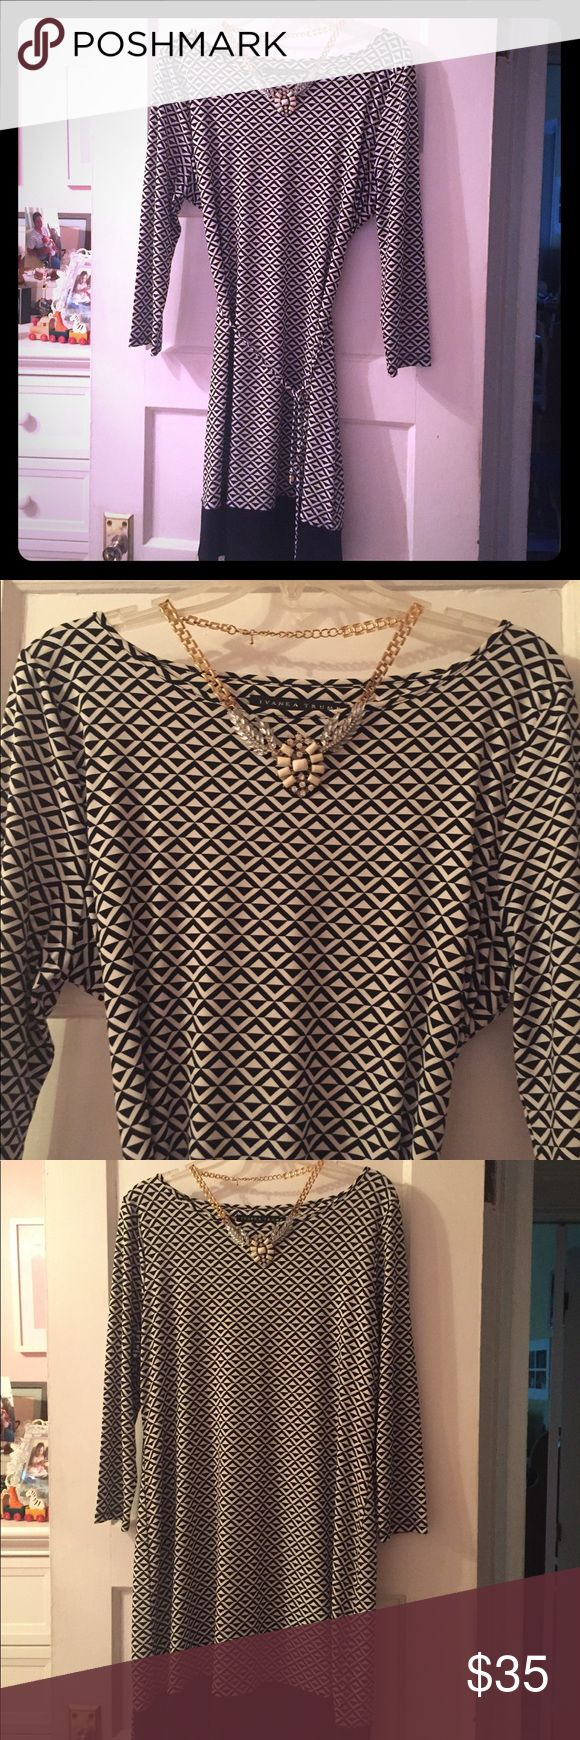 Ivanka Trump Geometric Print Dress Beautiful draped dress with eye catching black and white diamond geometric print, contrast black band at the hem of the dress and a thin fabric tie belt to adjust the waist of the dress. Long sleeve, slight boat neck styling and simple scoop. Excellent condition; worn twice but like new. Stretch material for a flattering fit. Size large would translate well to 12-14. Ivanka Trump Dresses